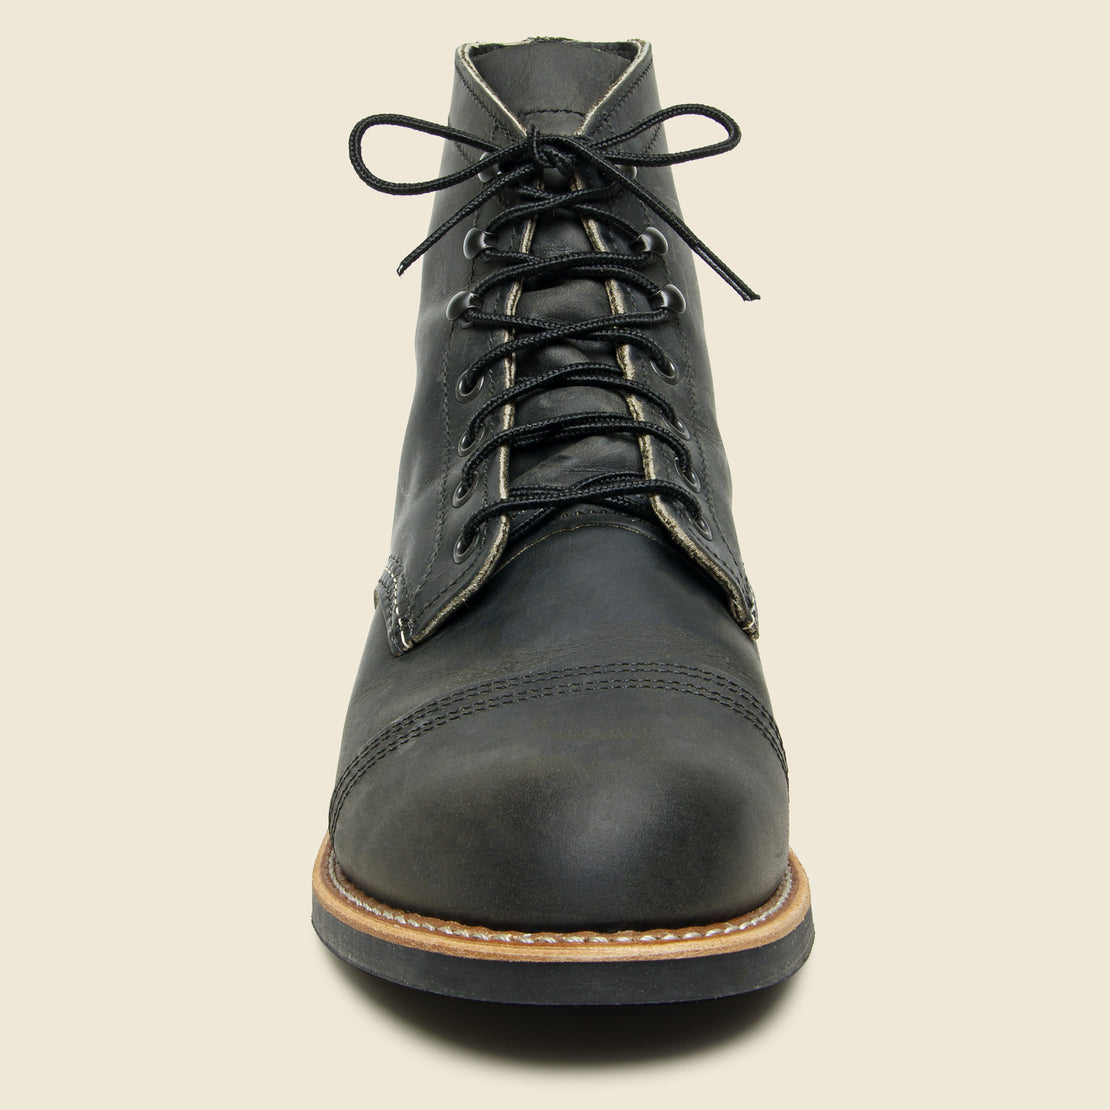 Iron Ranger No. 8086 - Charcoal Rough & Tough - Mini-Lug Sole